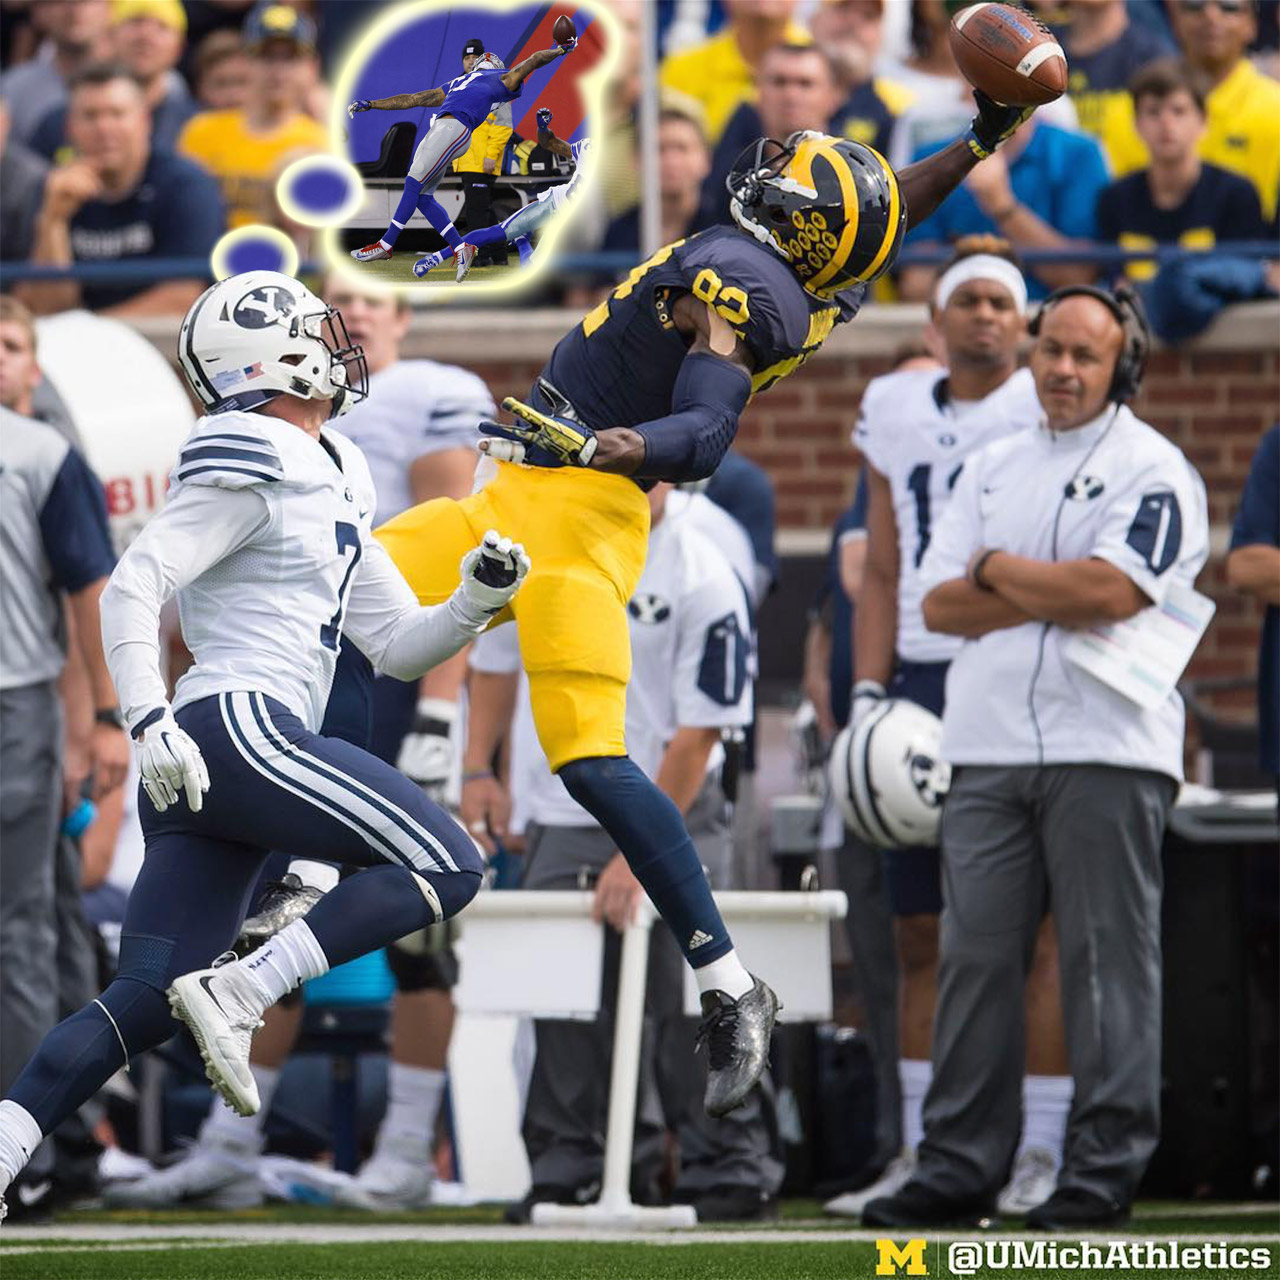 Wolverines WR Amara Darboh does his best Odell Beckham Jr. impersonation